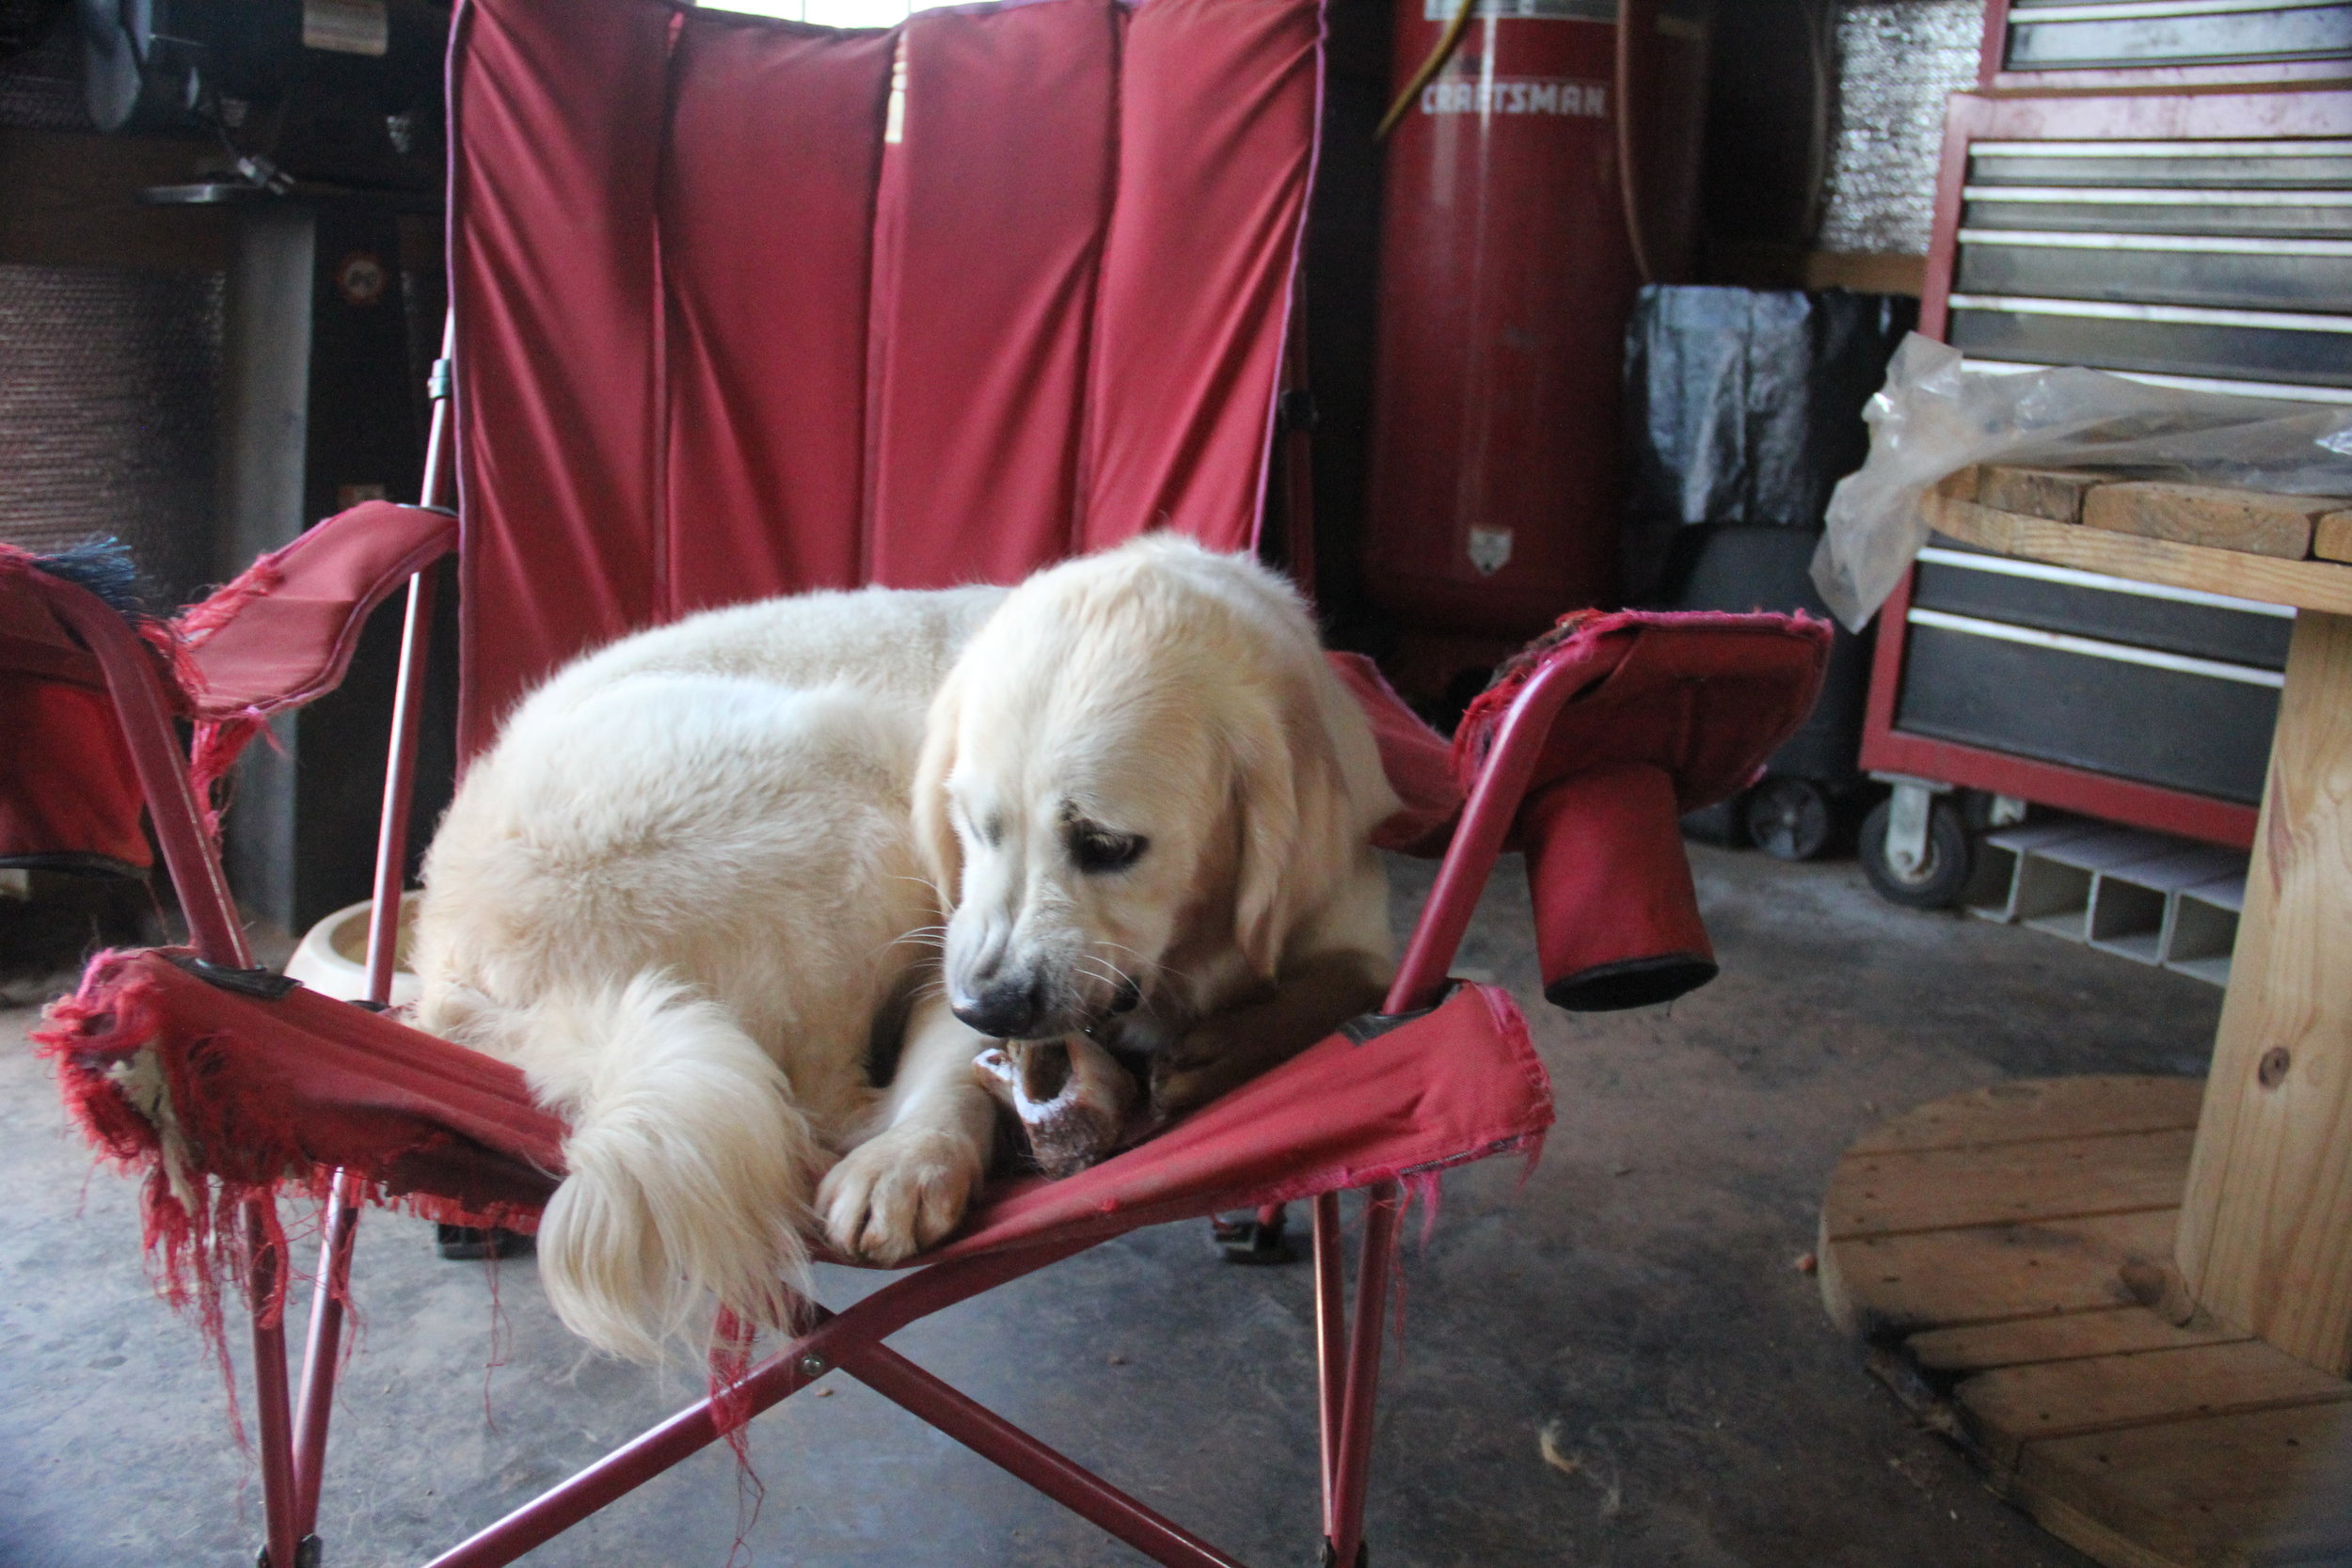 Shiloh found a comfy chair. Looks like she has been eating it????